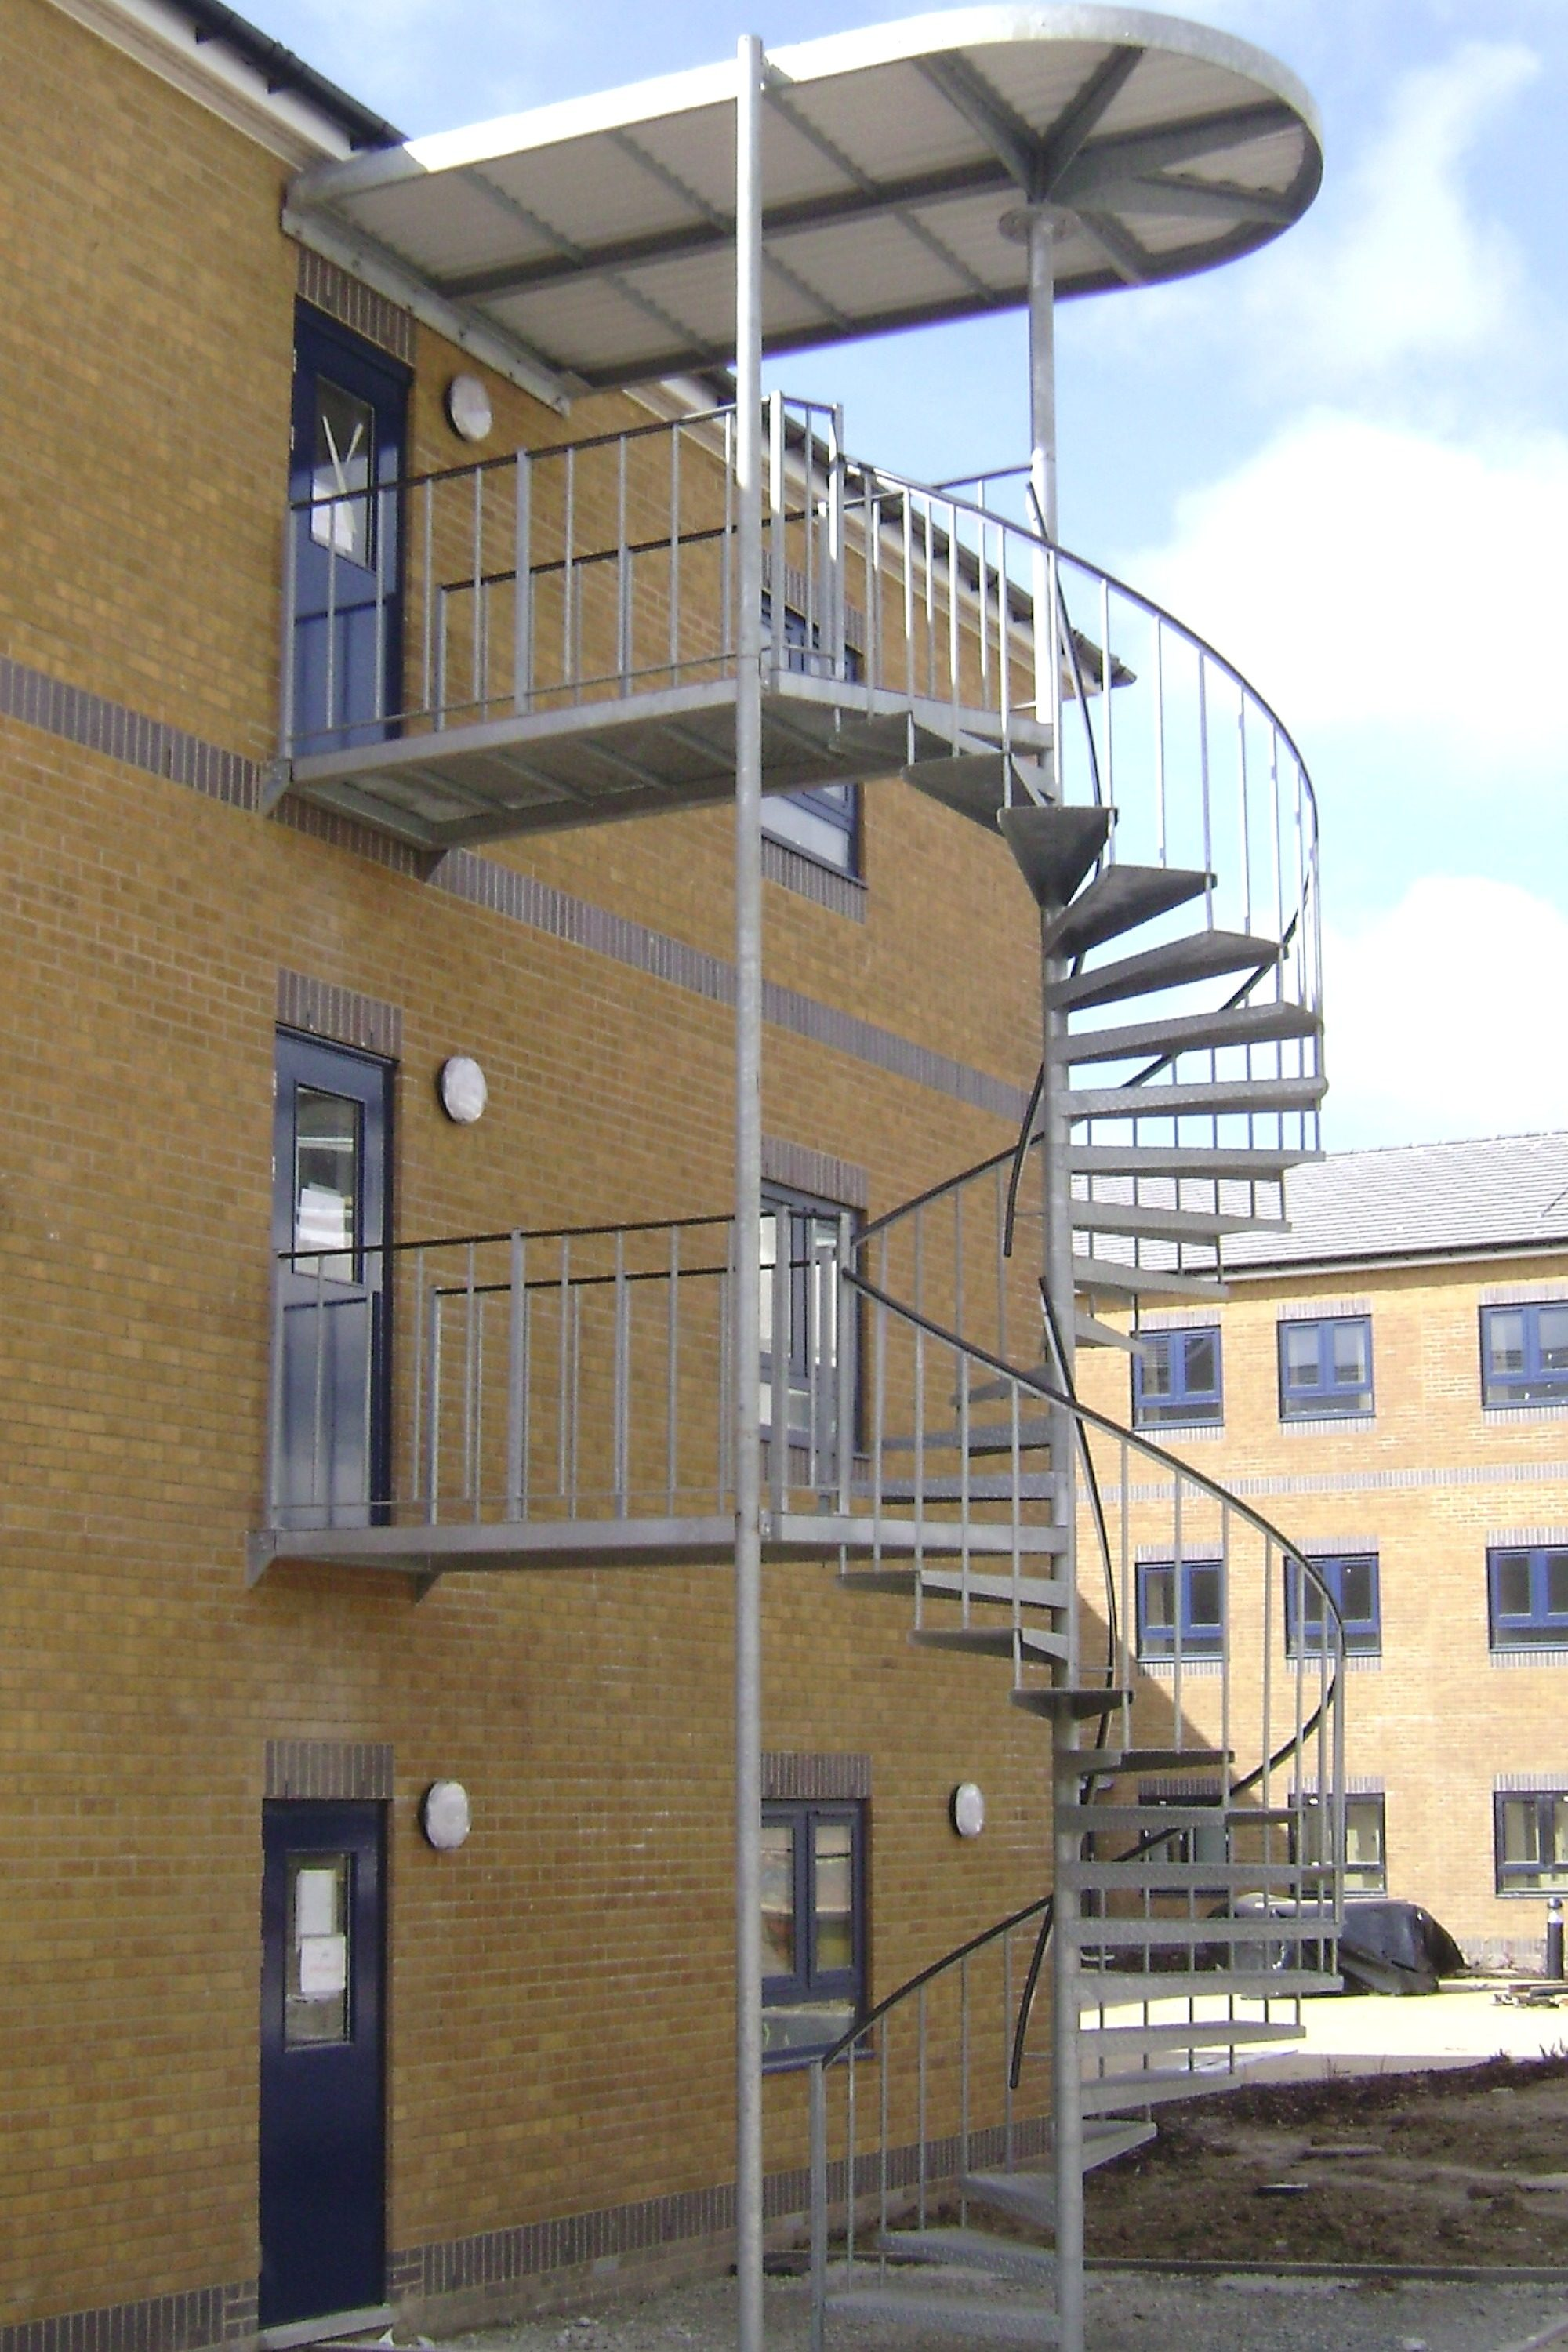 External spiral staircase with landings